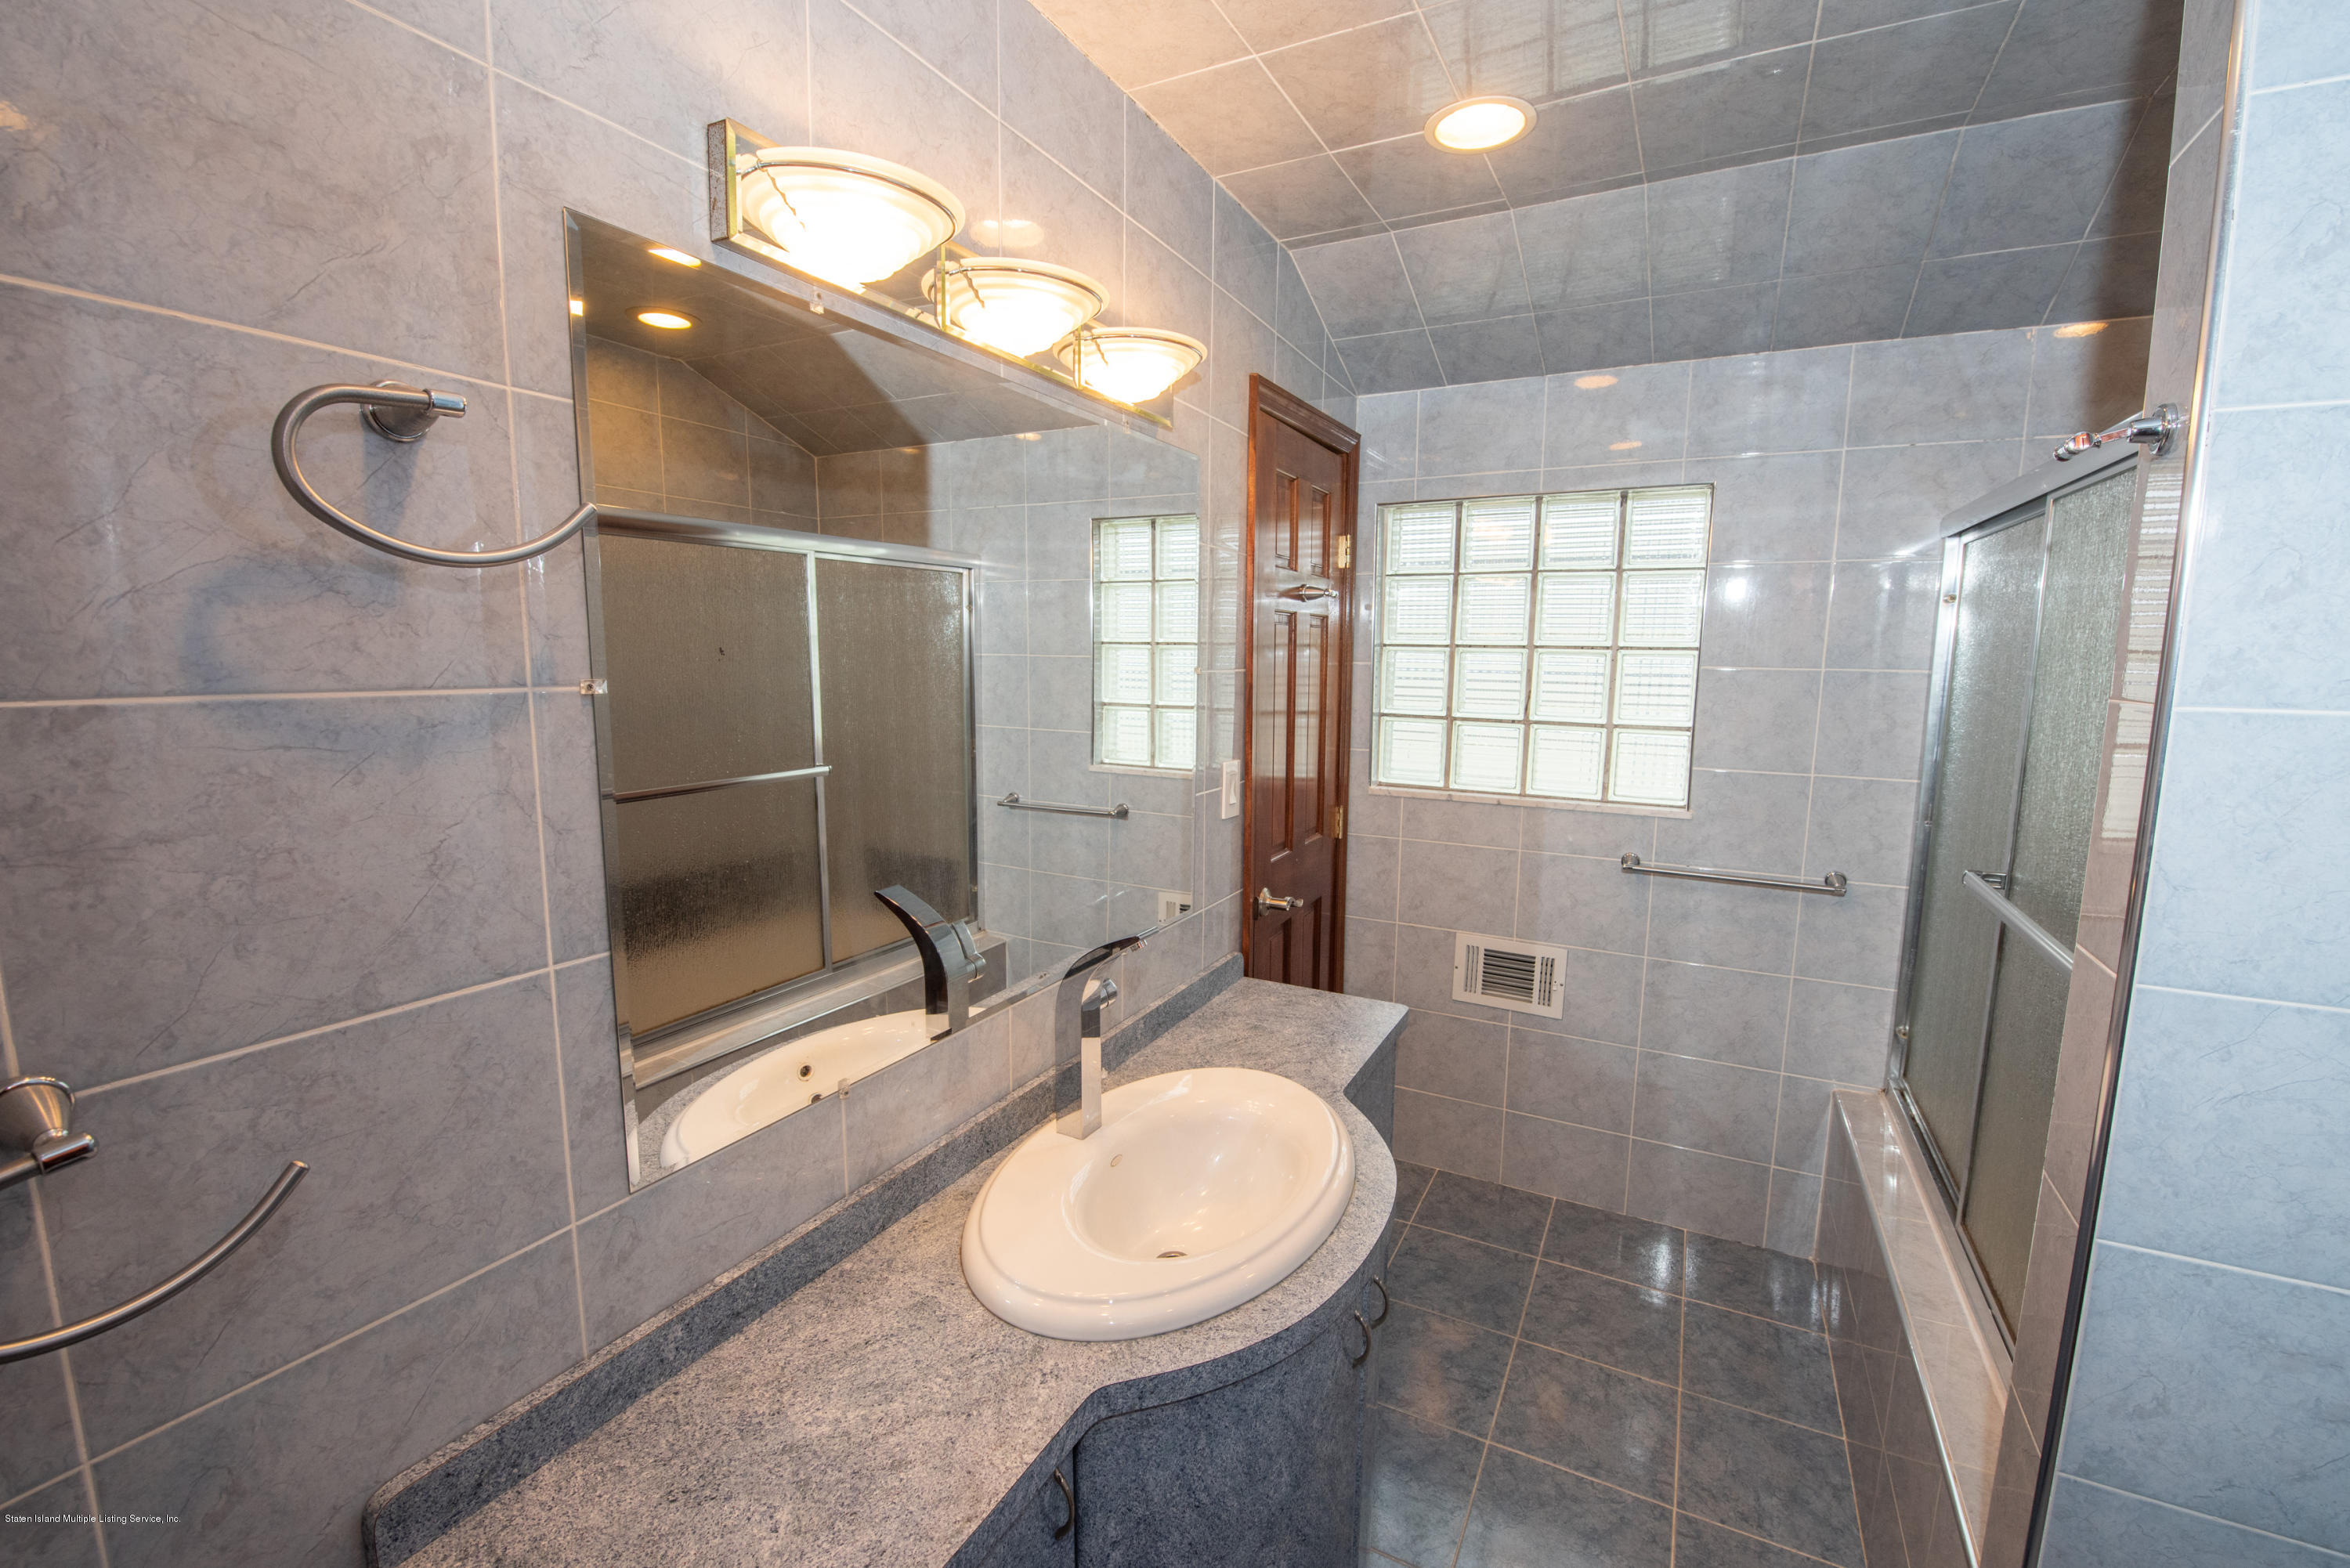 Single Family - Semi-Attached 76 Mcveigh Avenue  Staten Island, NY 10314, MLS-1133370-21